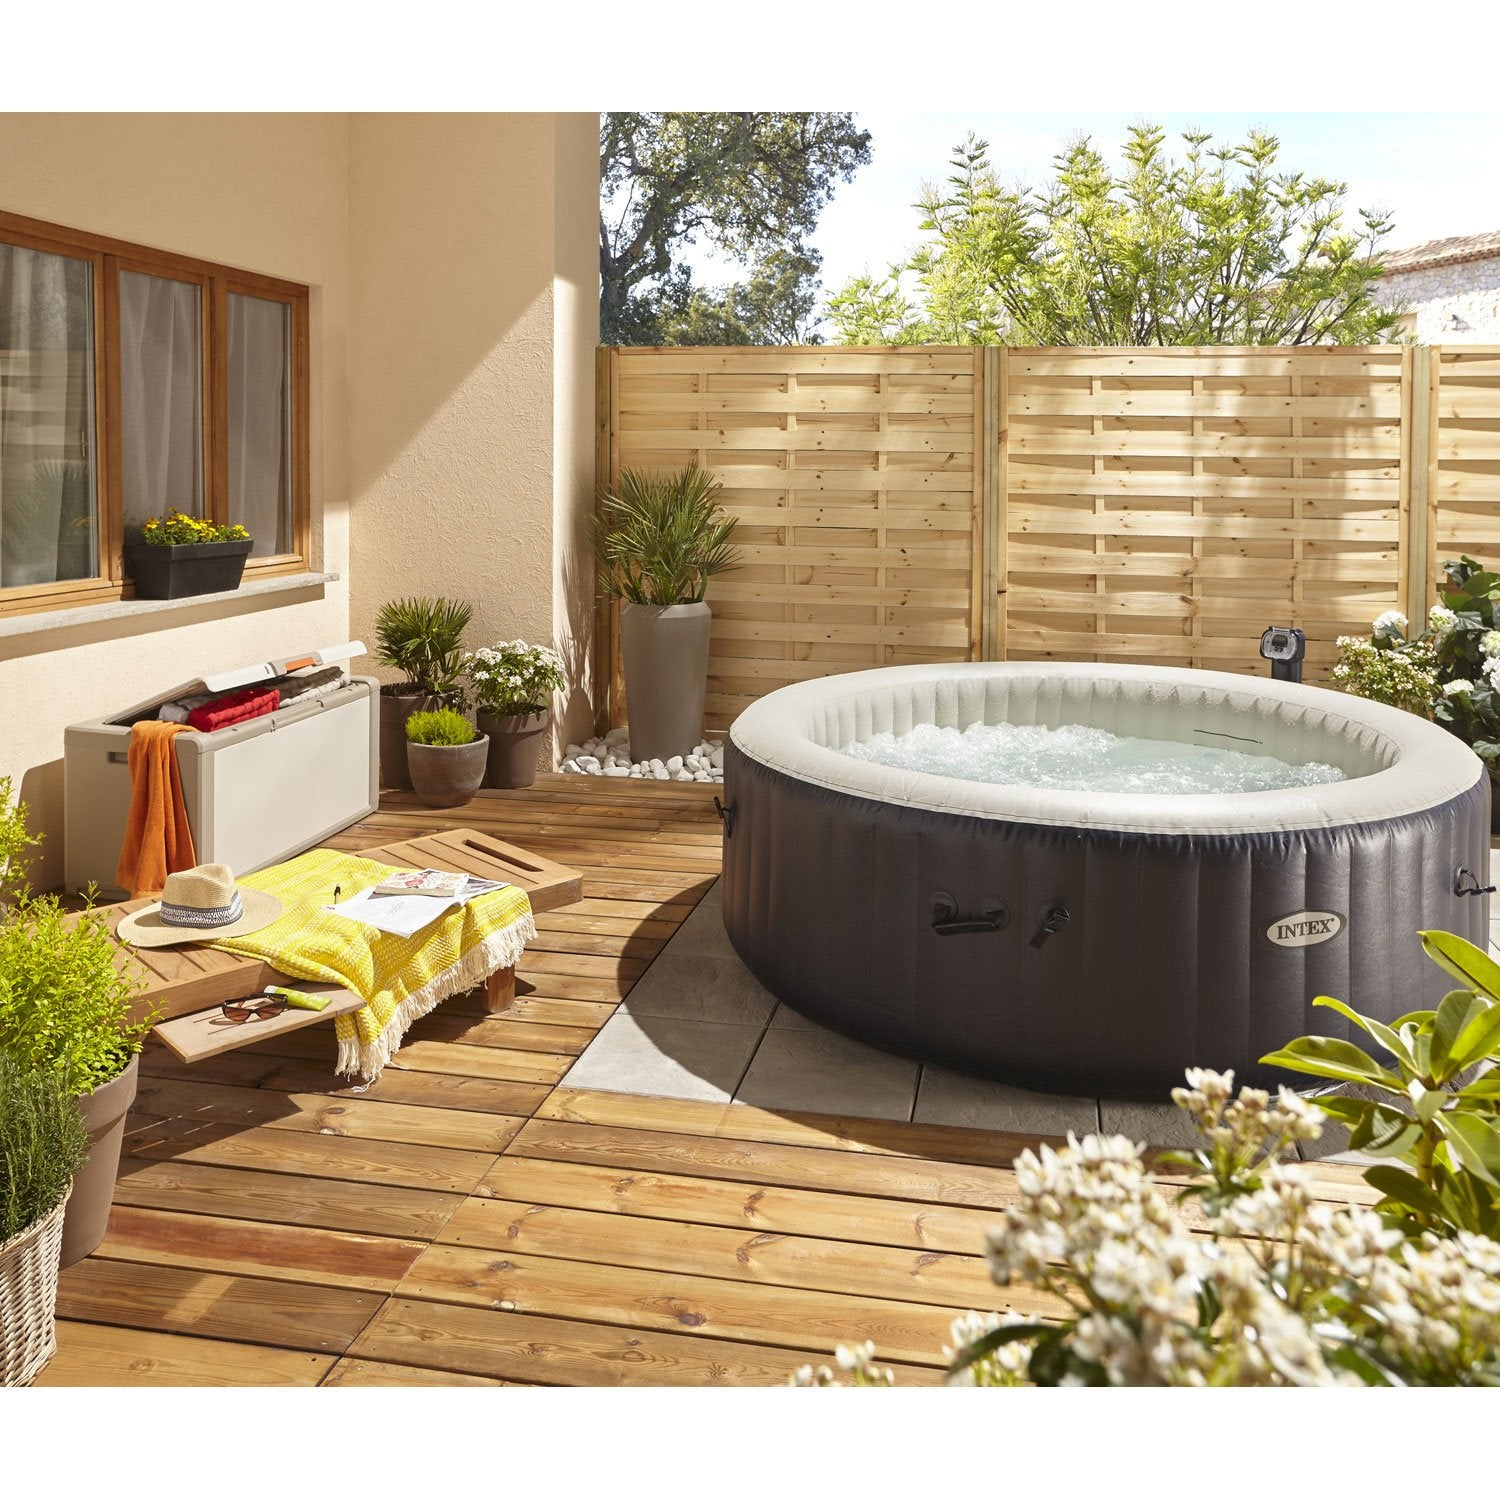 Affordable spa gonflable intex purespa bulles blue navy rond with spa intex leroy merlin with - Castorama jardin rotofil orleans ...